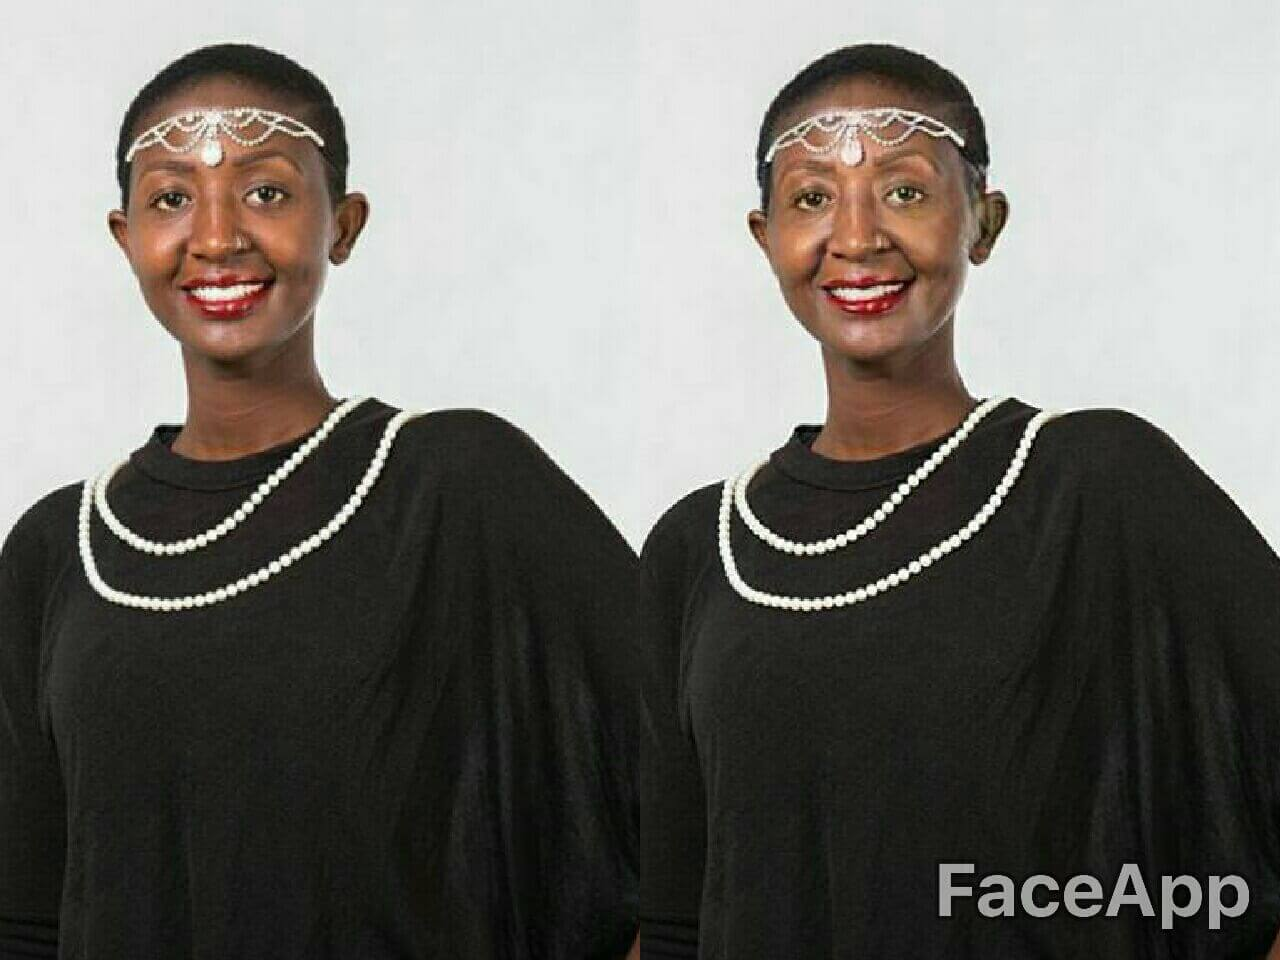 WhatsApp Image 2017 10 29 at 20.47.08 9 1 1 - When beauty fades! Photos Of Kenyan Celebrities 20 Years From Now!